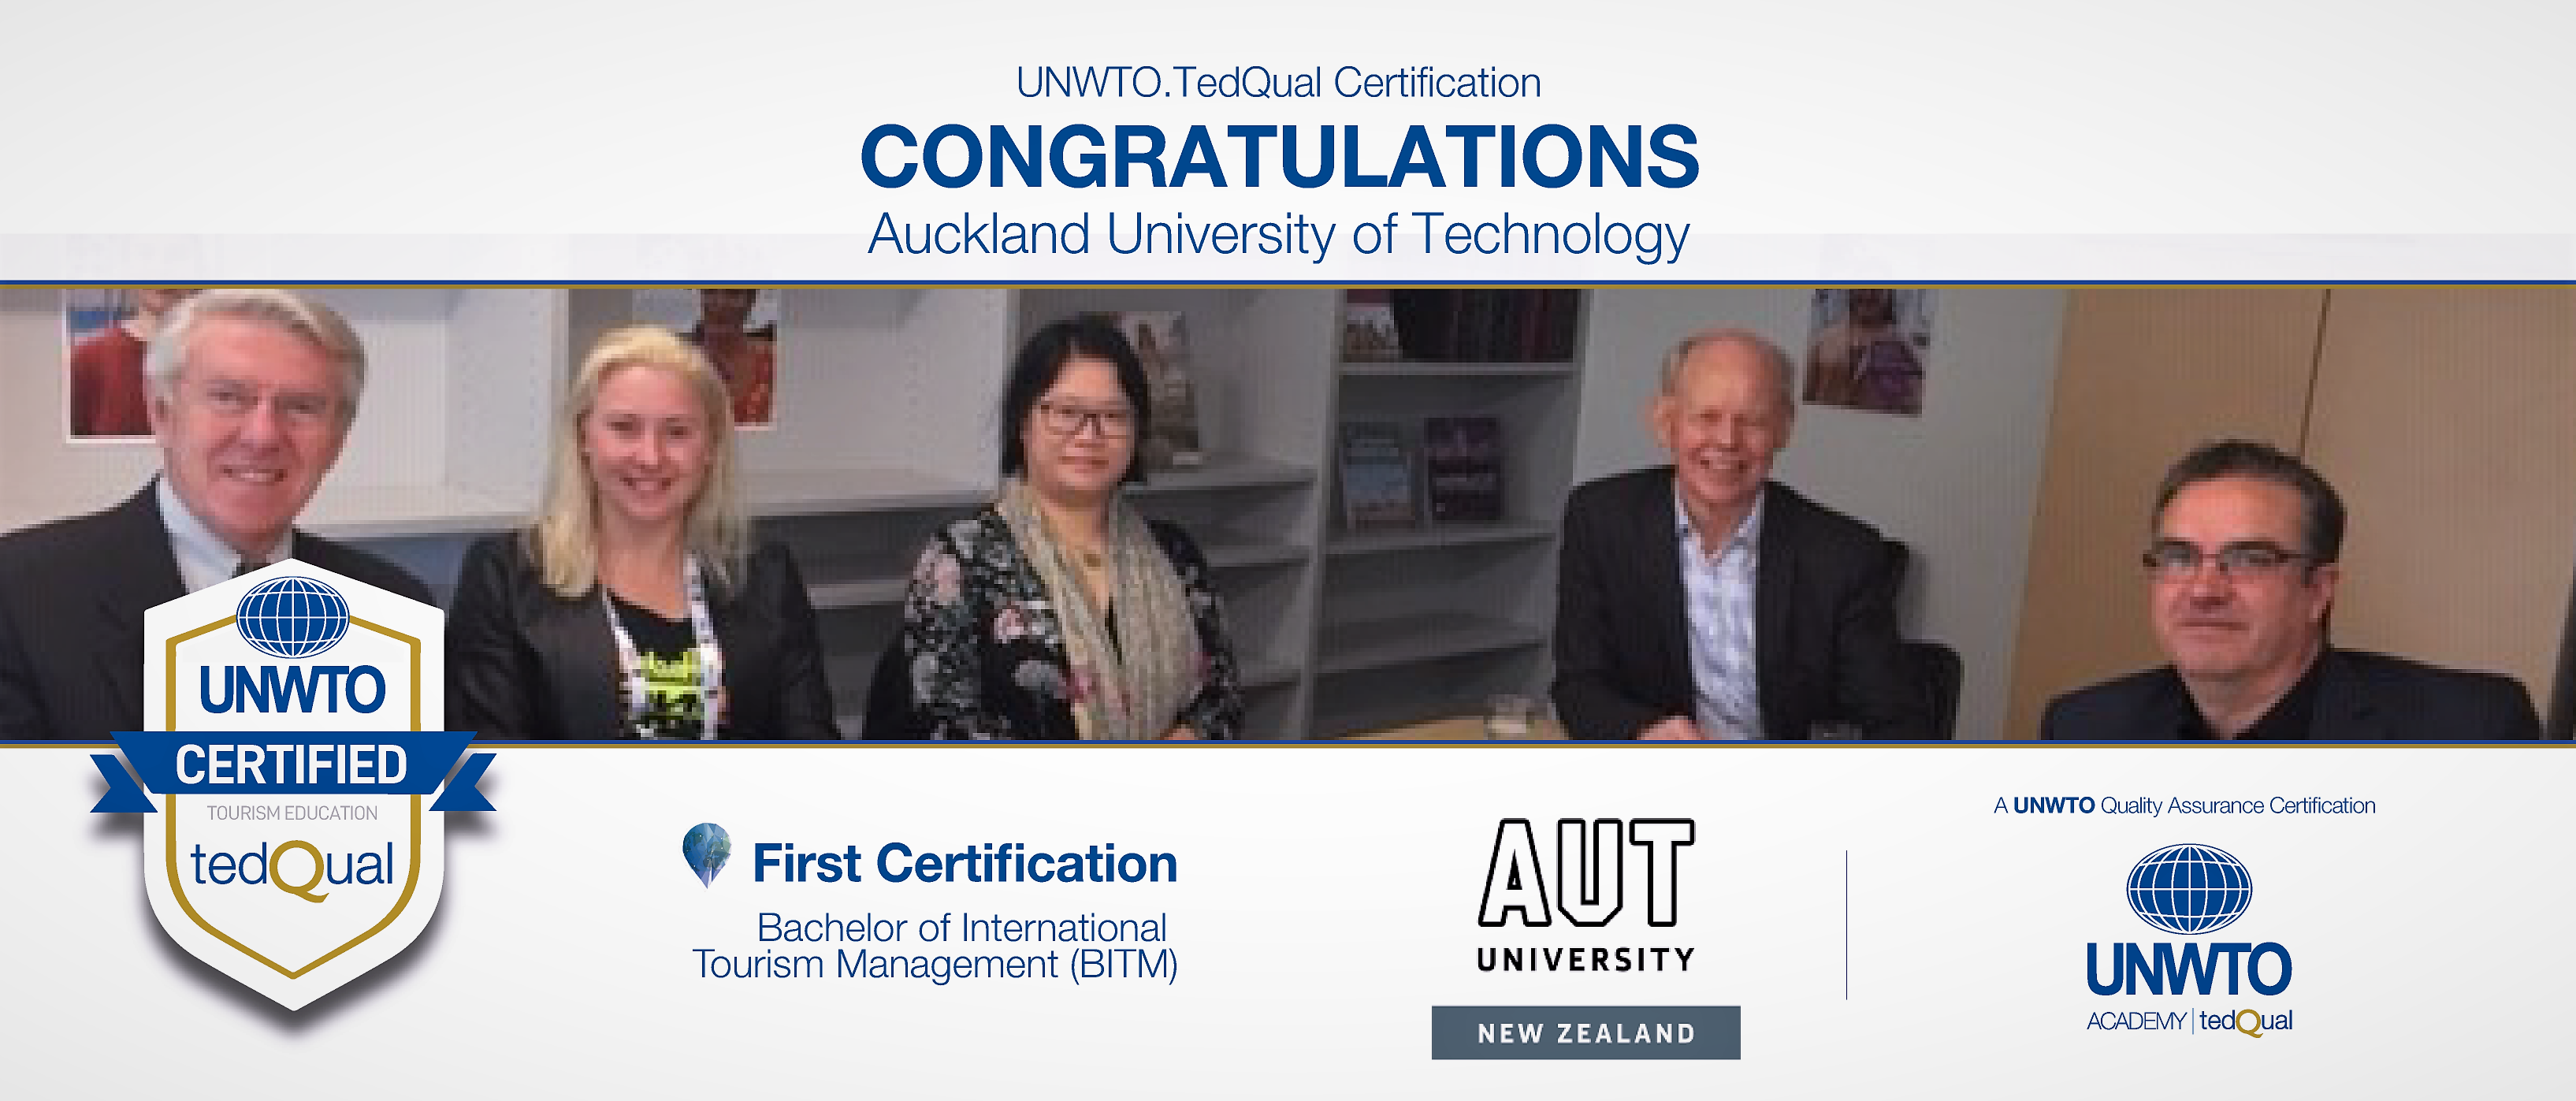 UNWTO.TedQual Certification - Auckland University of Technology